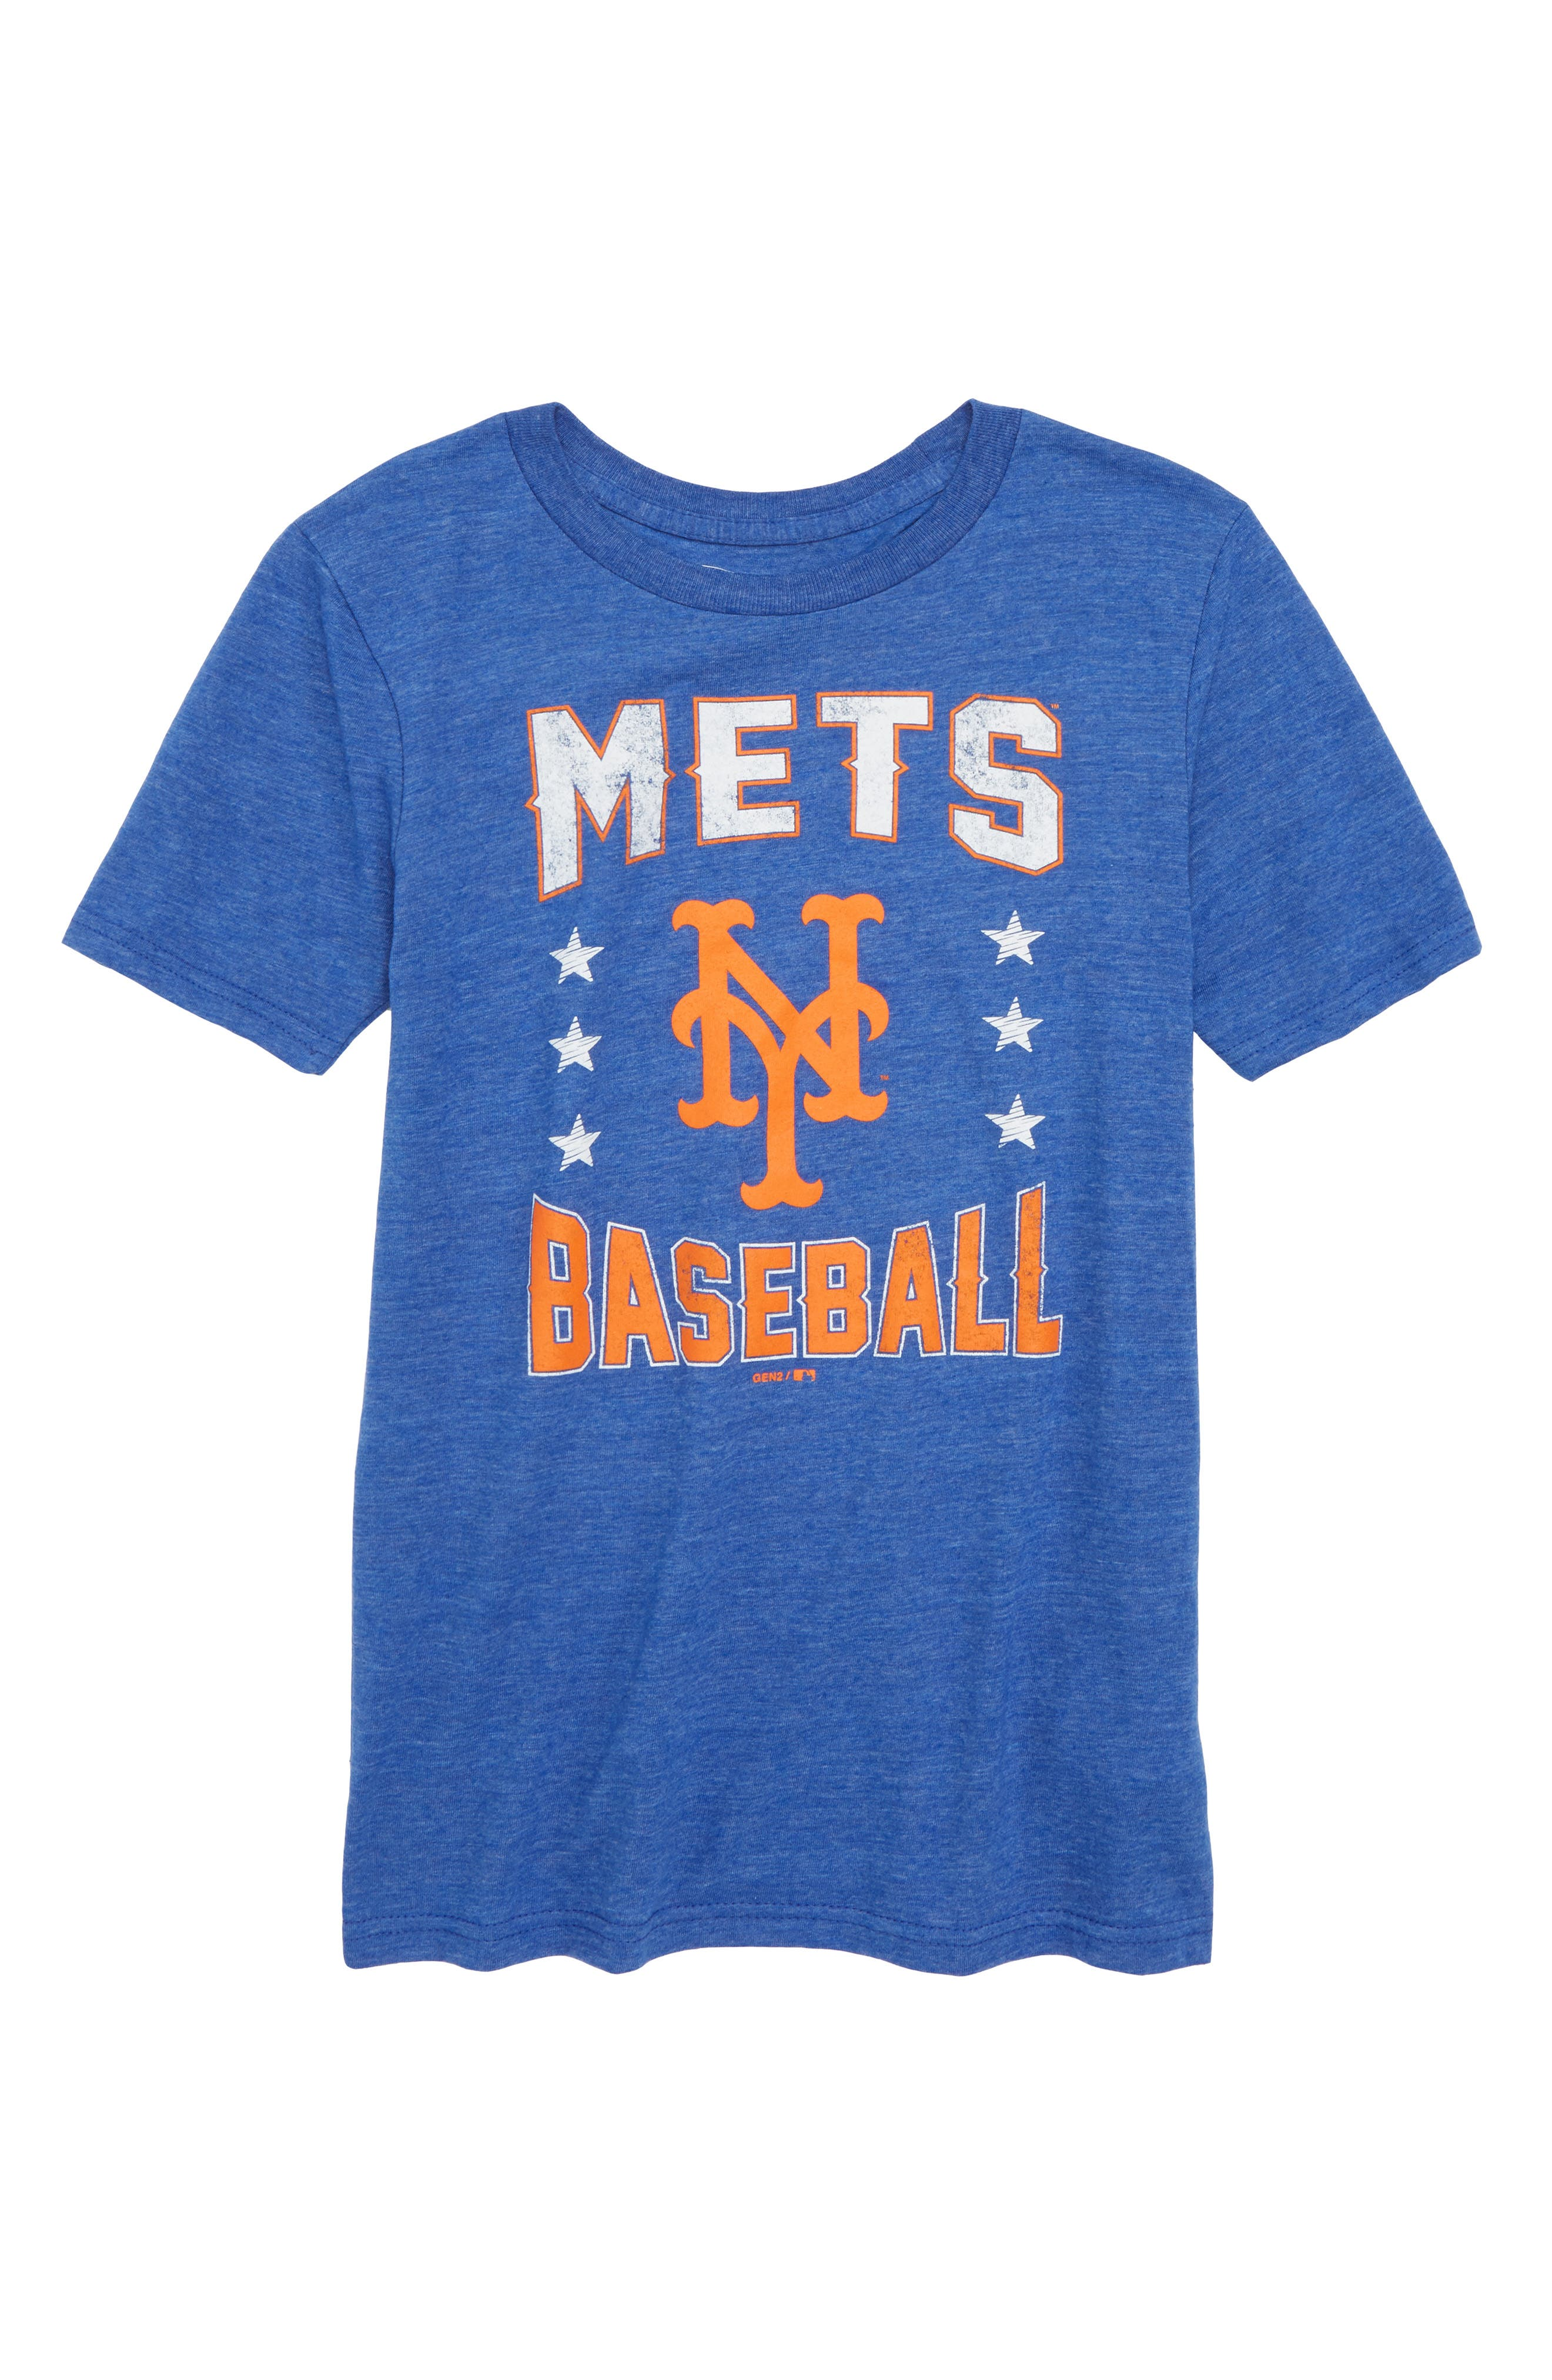 New York Mets Triple Play T-Shirt,                         Main,                         color, 461